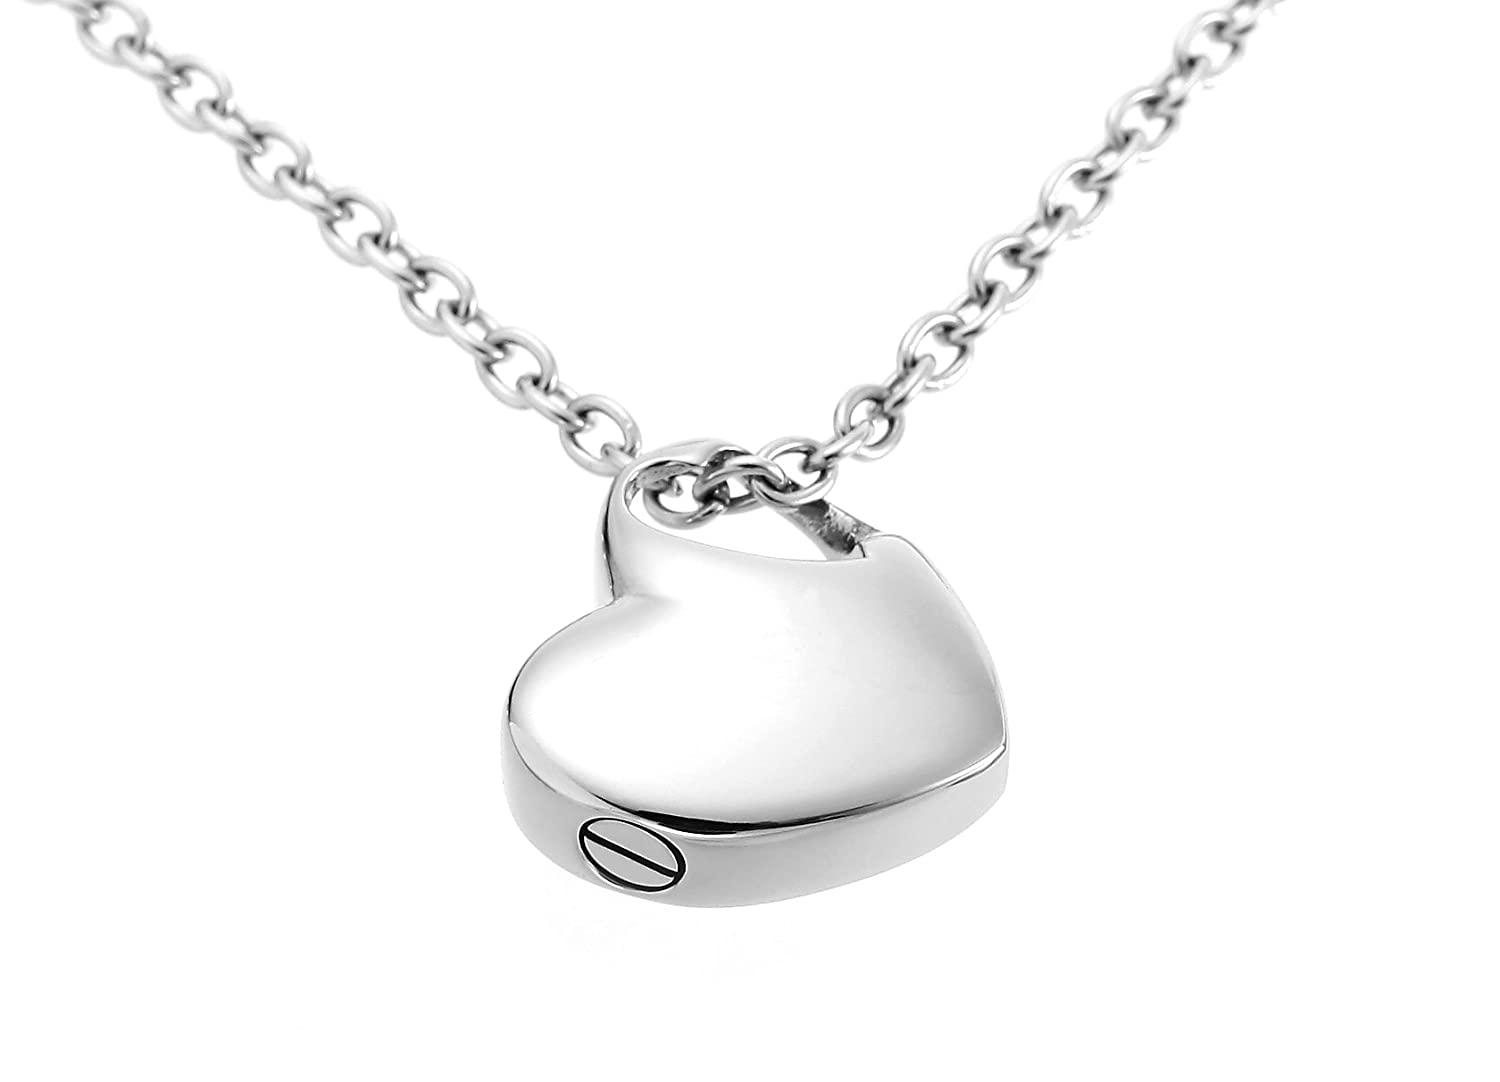 a0655aea6ae Amazon.com  Hold My Heart Pendant Cremation Urn Jewelry Necklace with  Funnel Filler Kit Ashes Keepsake Memorial  Jewelry